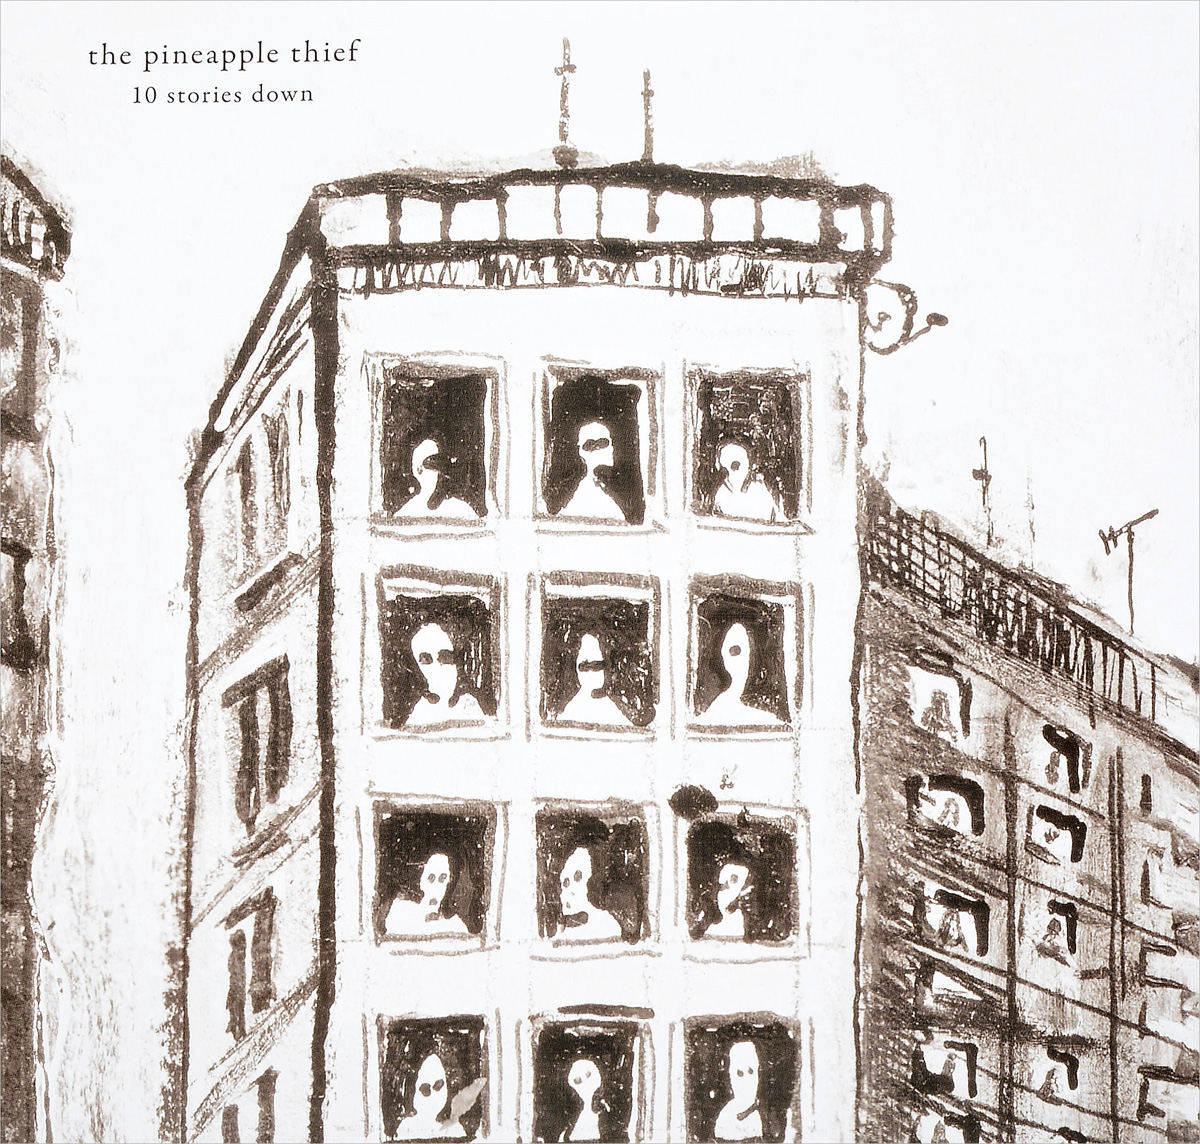 The Pineapple Thief The Pineapple Thief. 10 Stories Down (2 LP) the fame thief